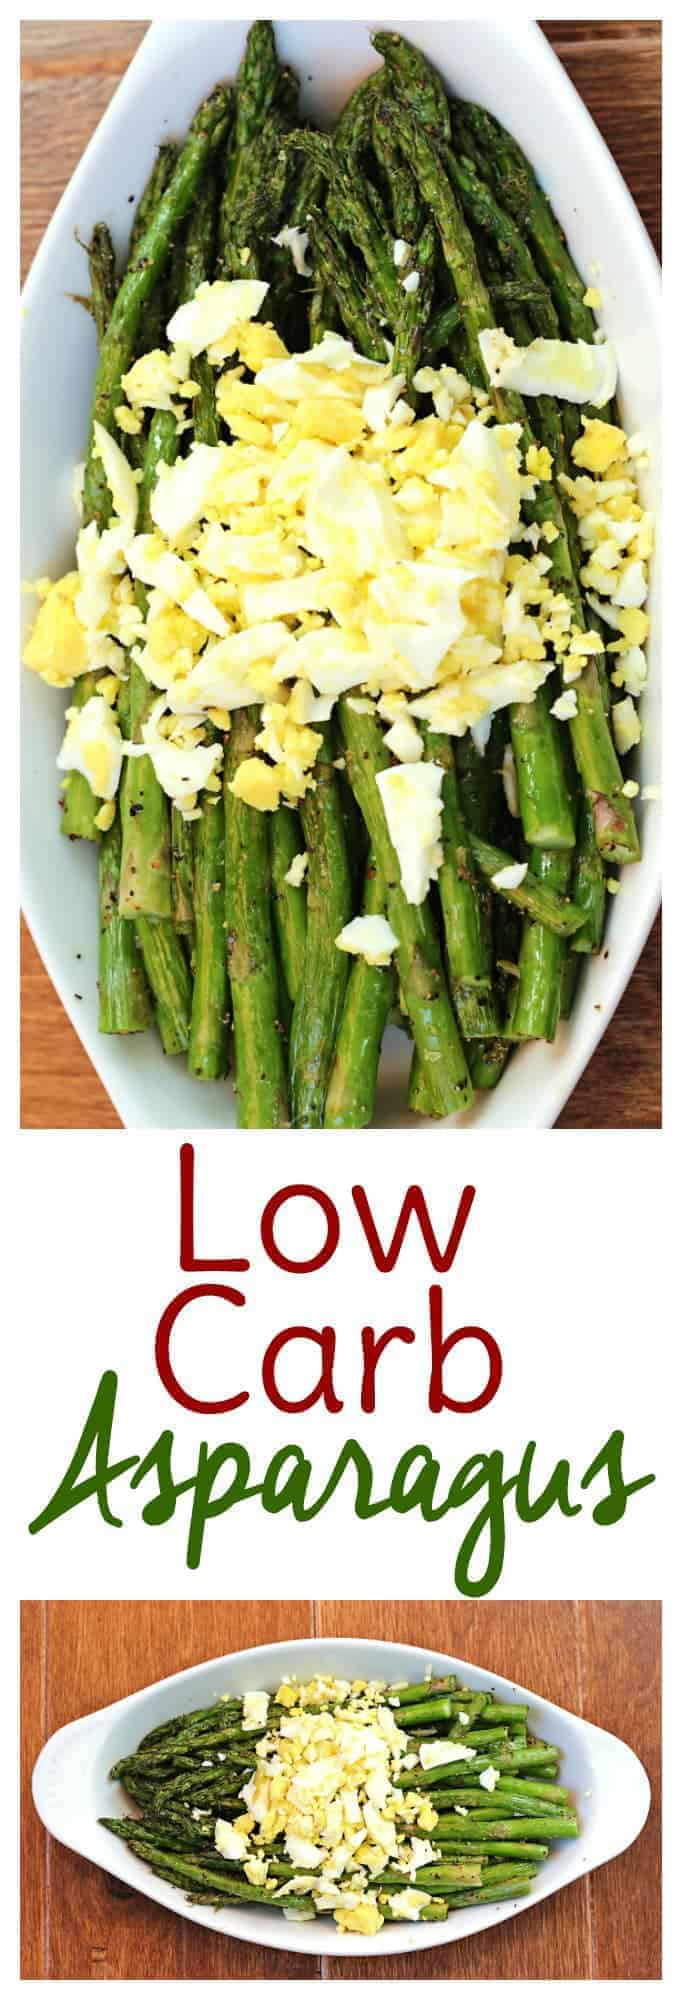 If you're on a low carb diet and struggling to get enough vegetables into your diet, try this asparagus low carb vegetable recipe. The <a href=